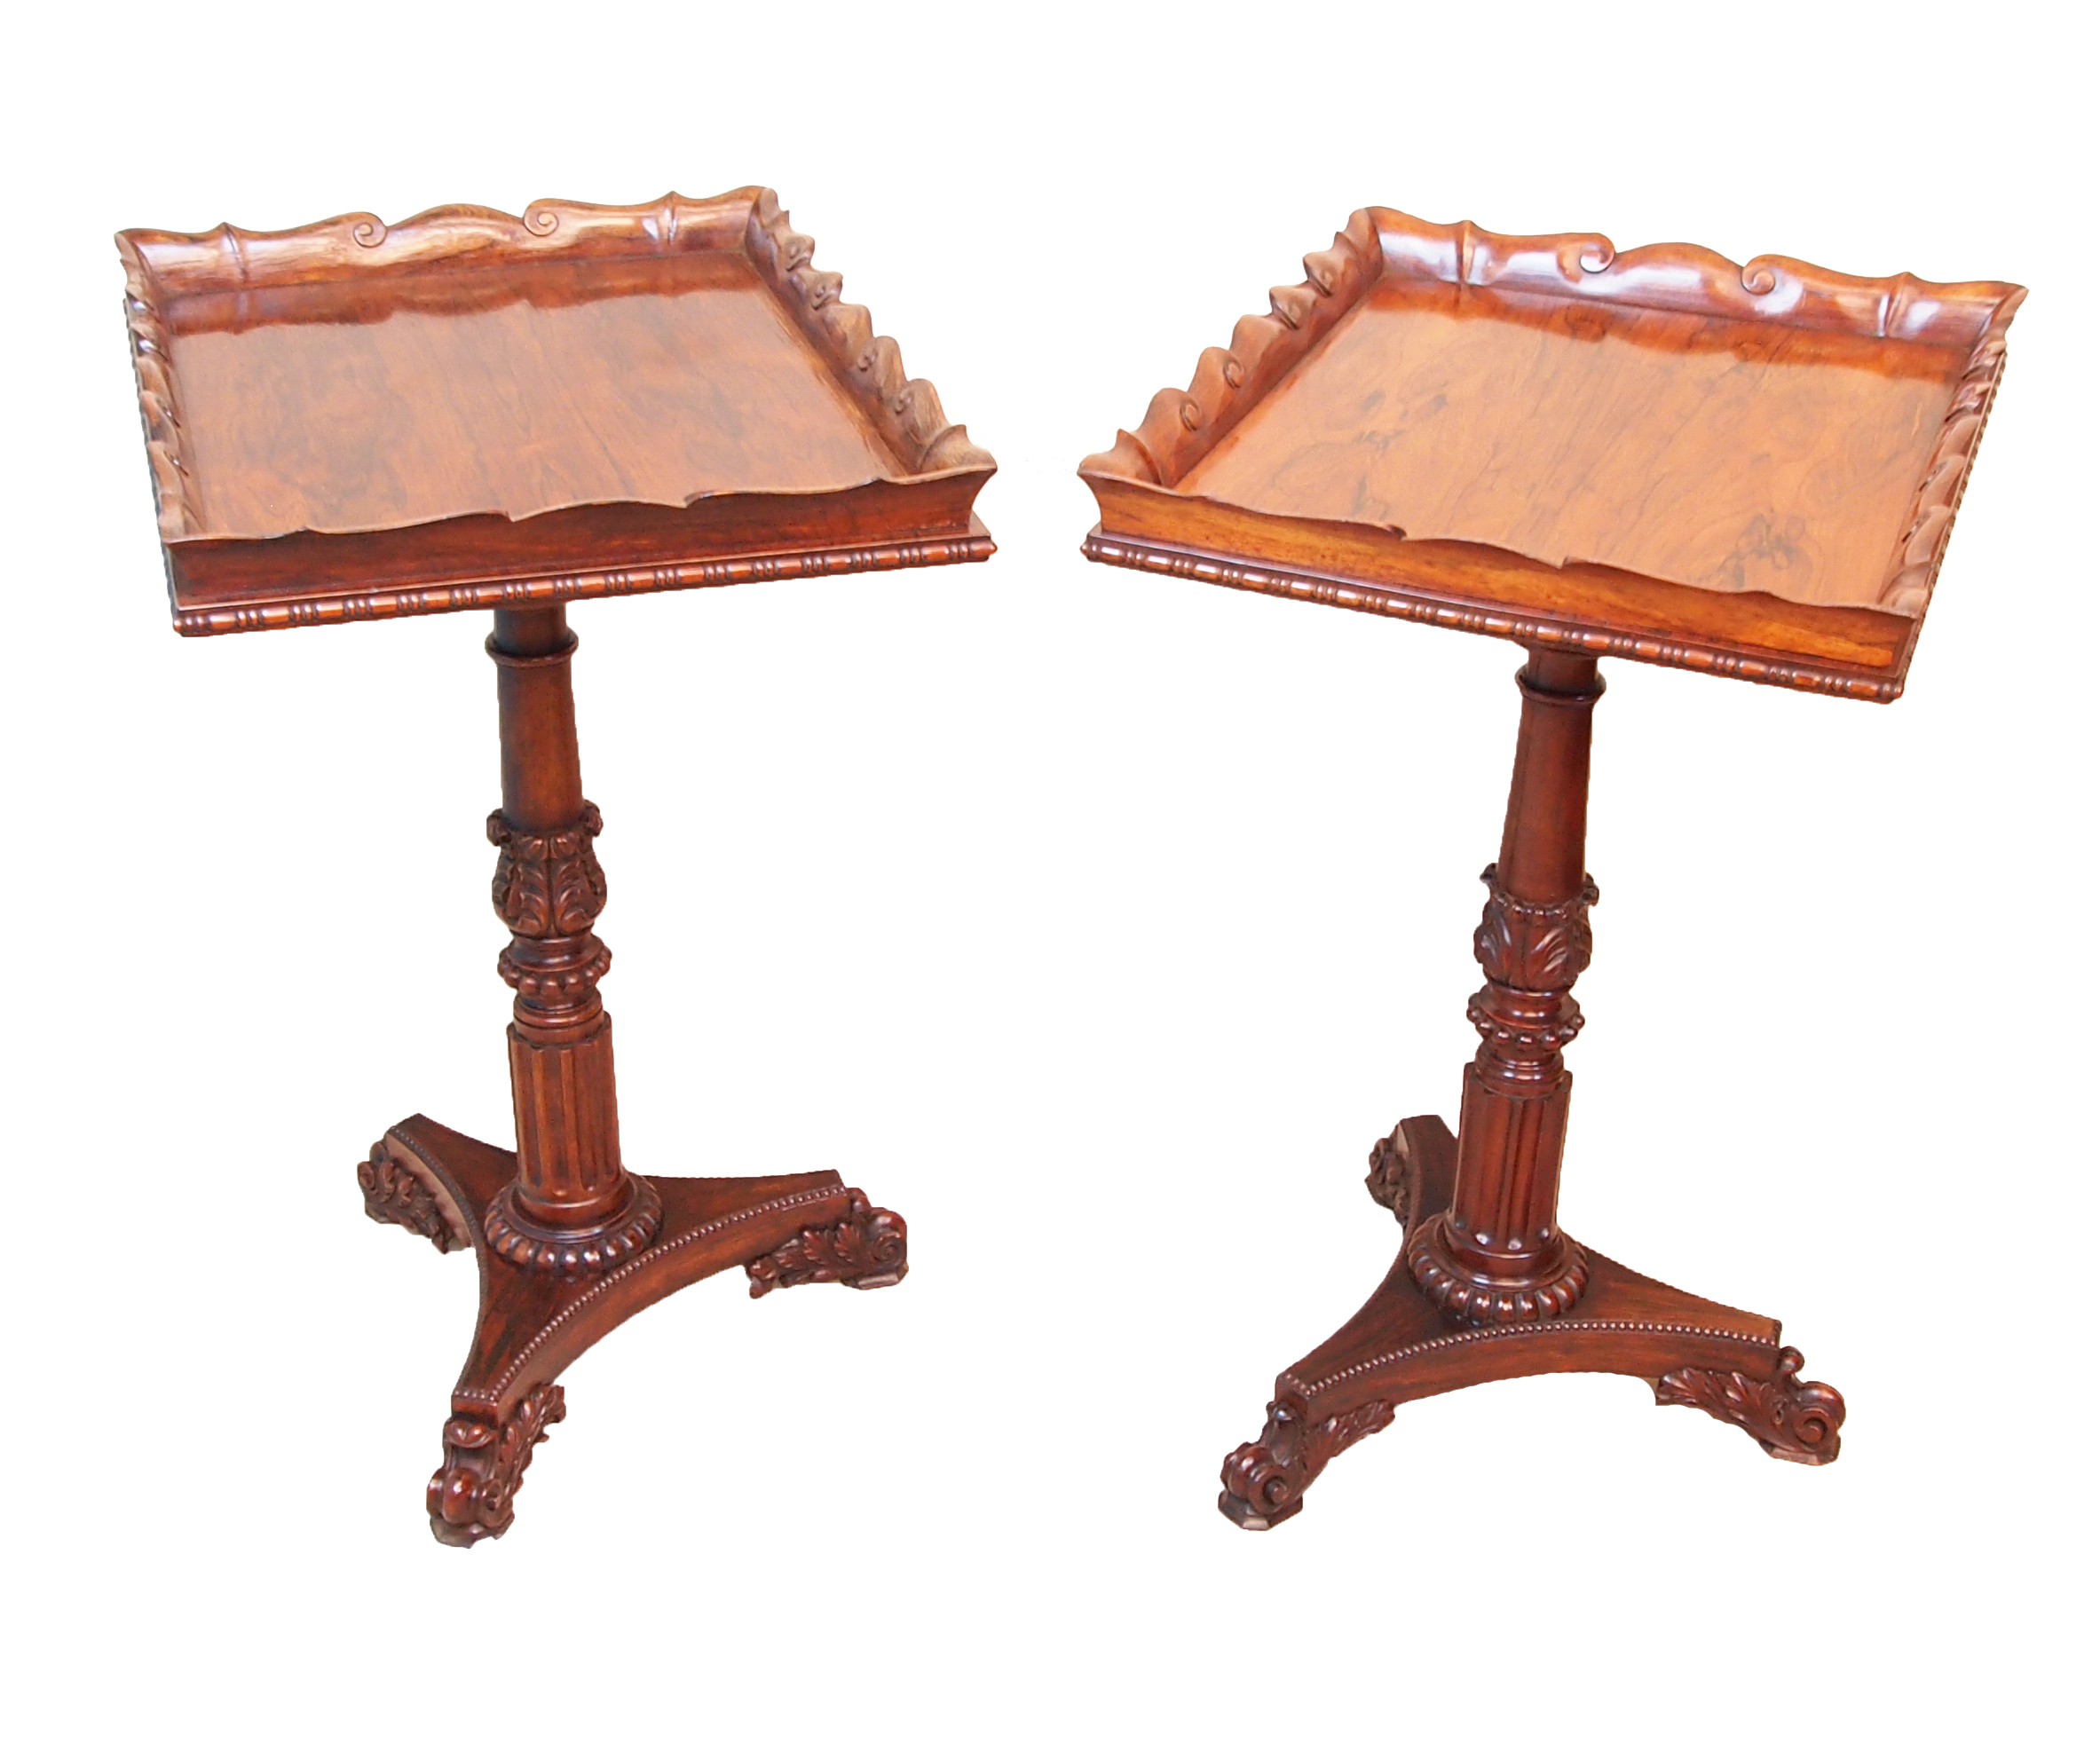 S&S Timms Antiques: Regency rosewood lamp tables, attributed to Gillows of Lancaster and London, £18,500.